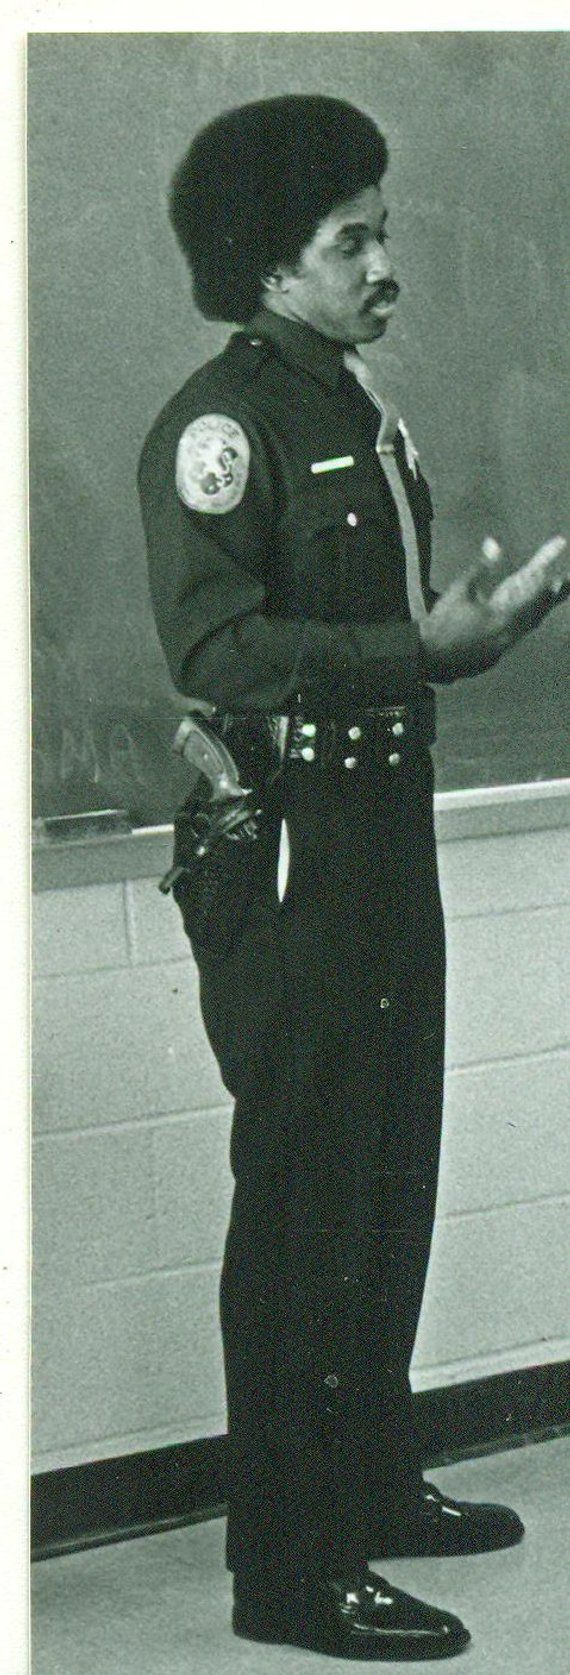 1970s African American Police Officer Uniform Afro Chalk Board Vintage Photograph Black White Photo Police Officer Uniform Vintage Photographs African American